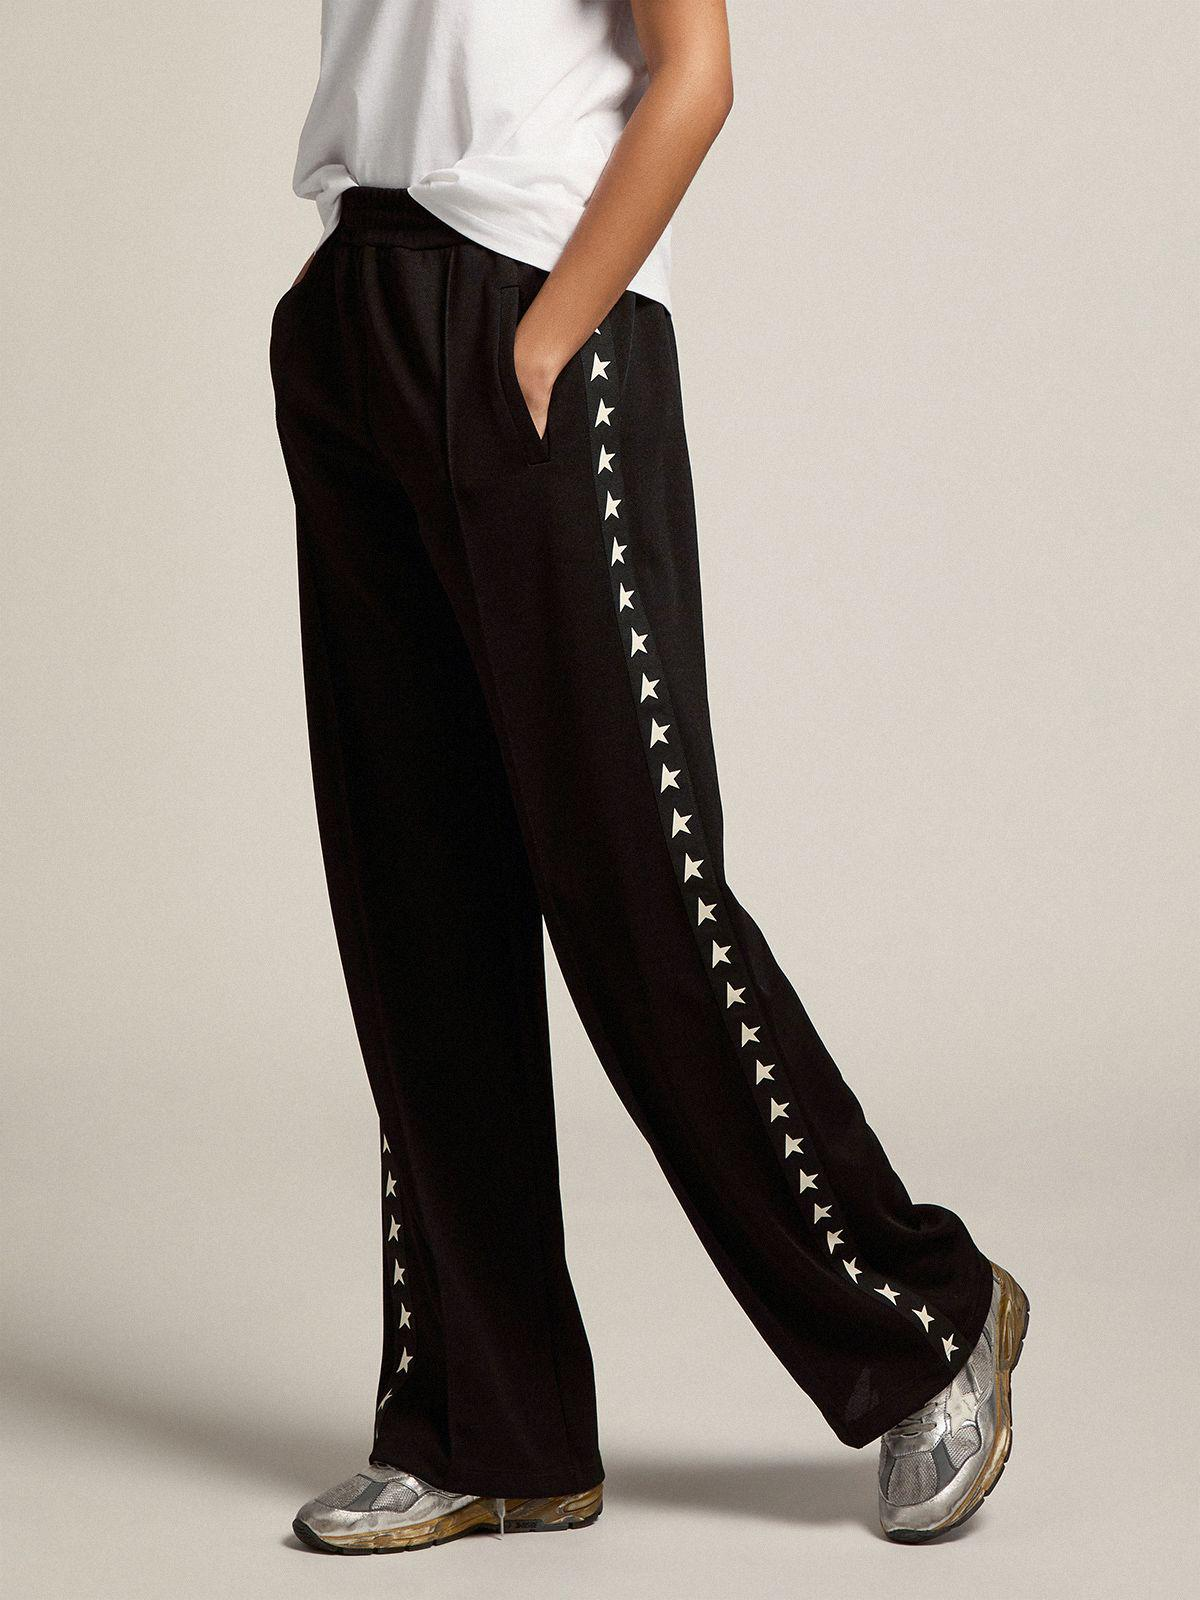 Black Dorotea Star Collection jogging pants with white stars on the sides 0